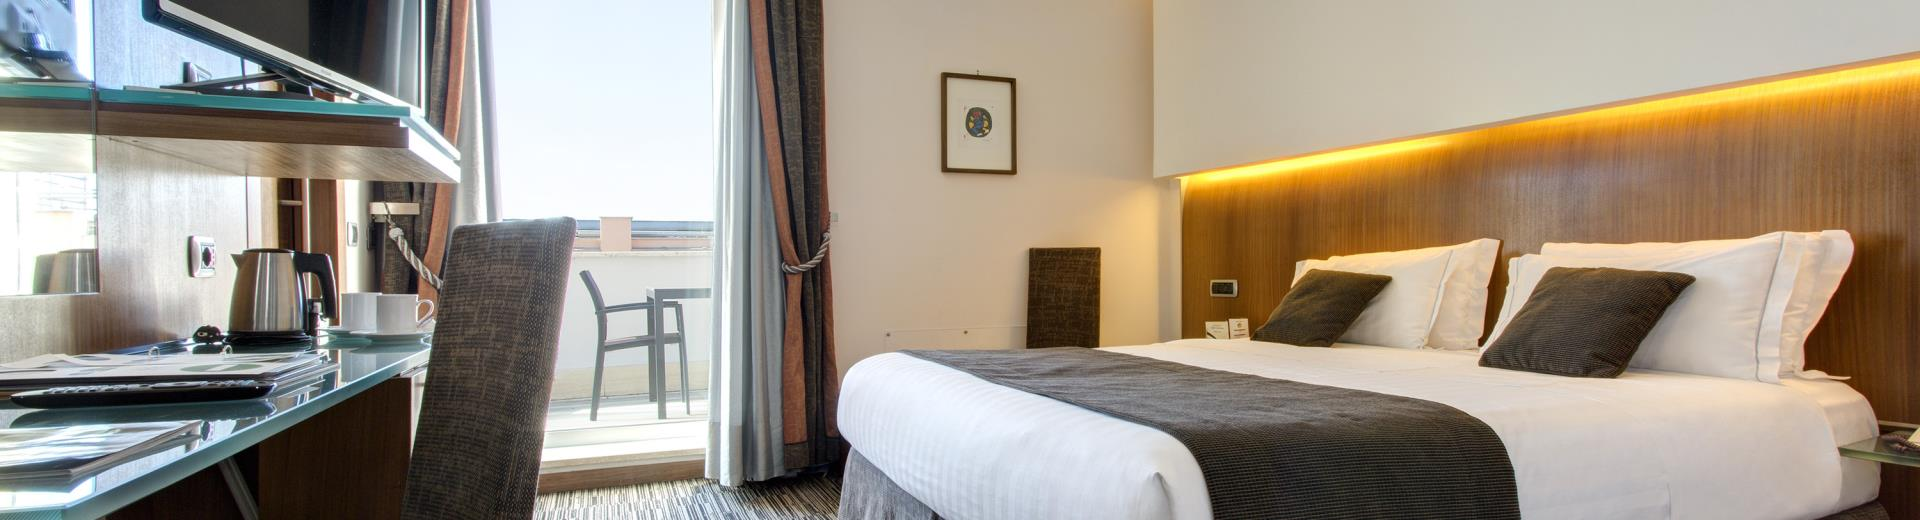 Superior Room-Best Western Hotel Universo Roma 4 stars